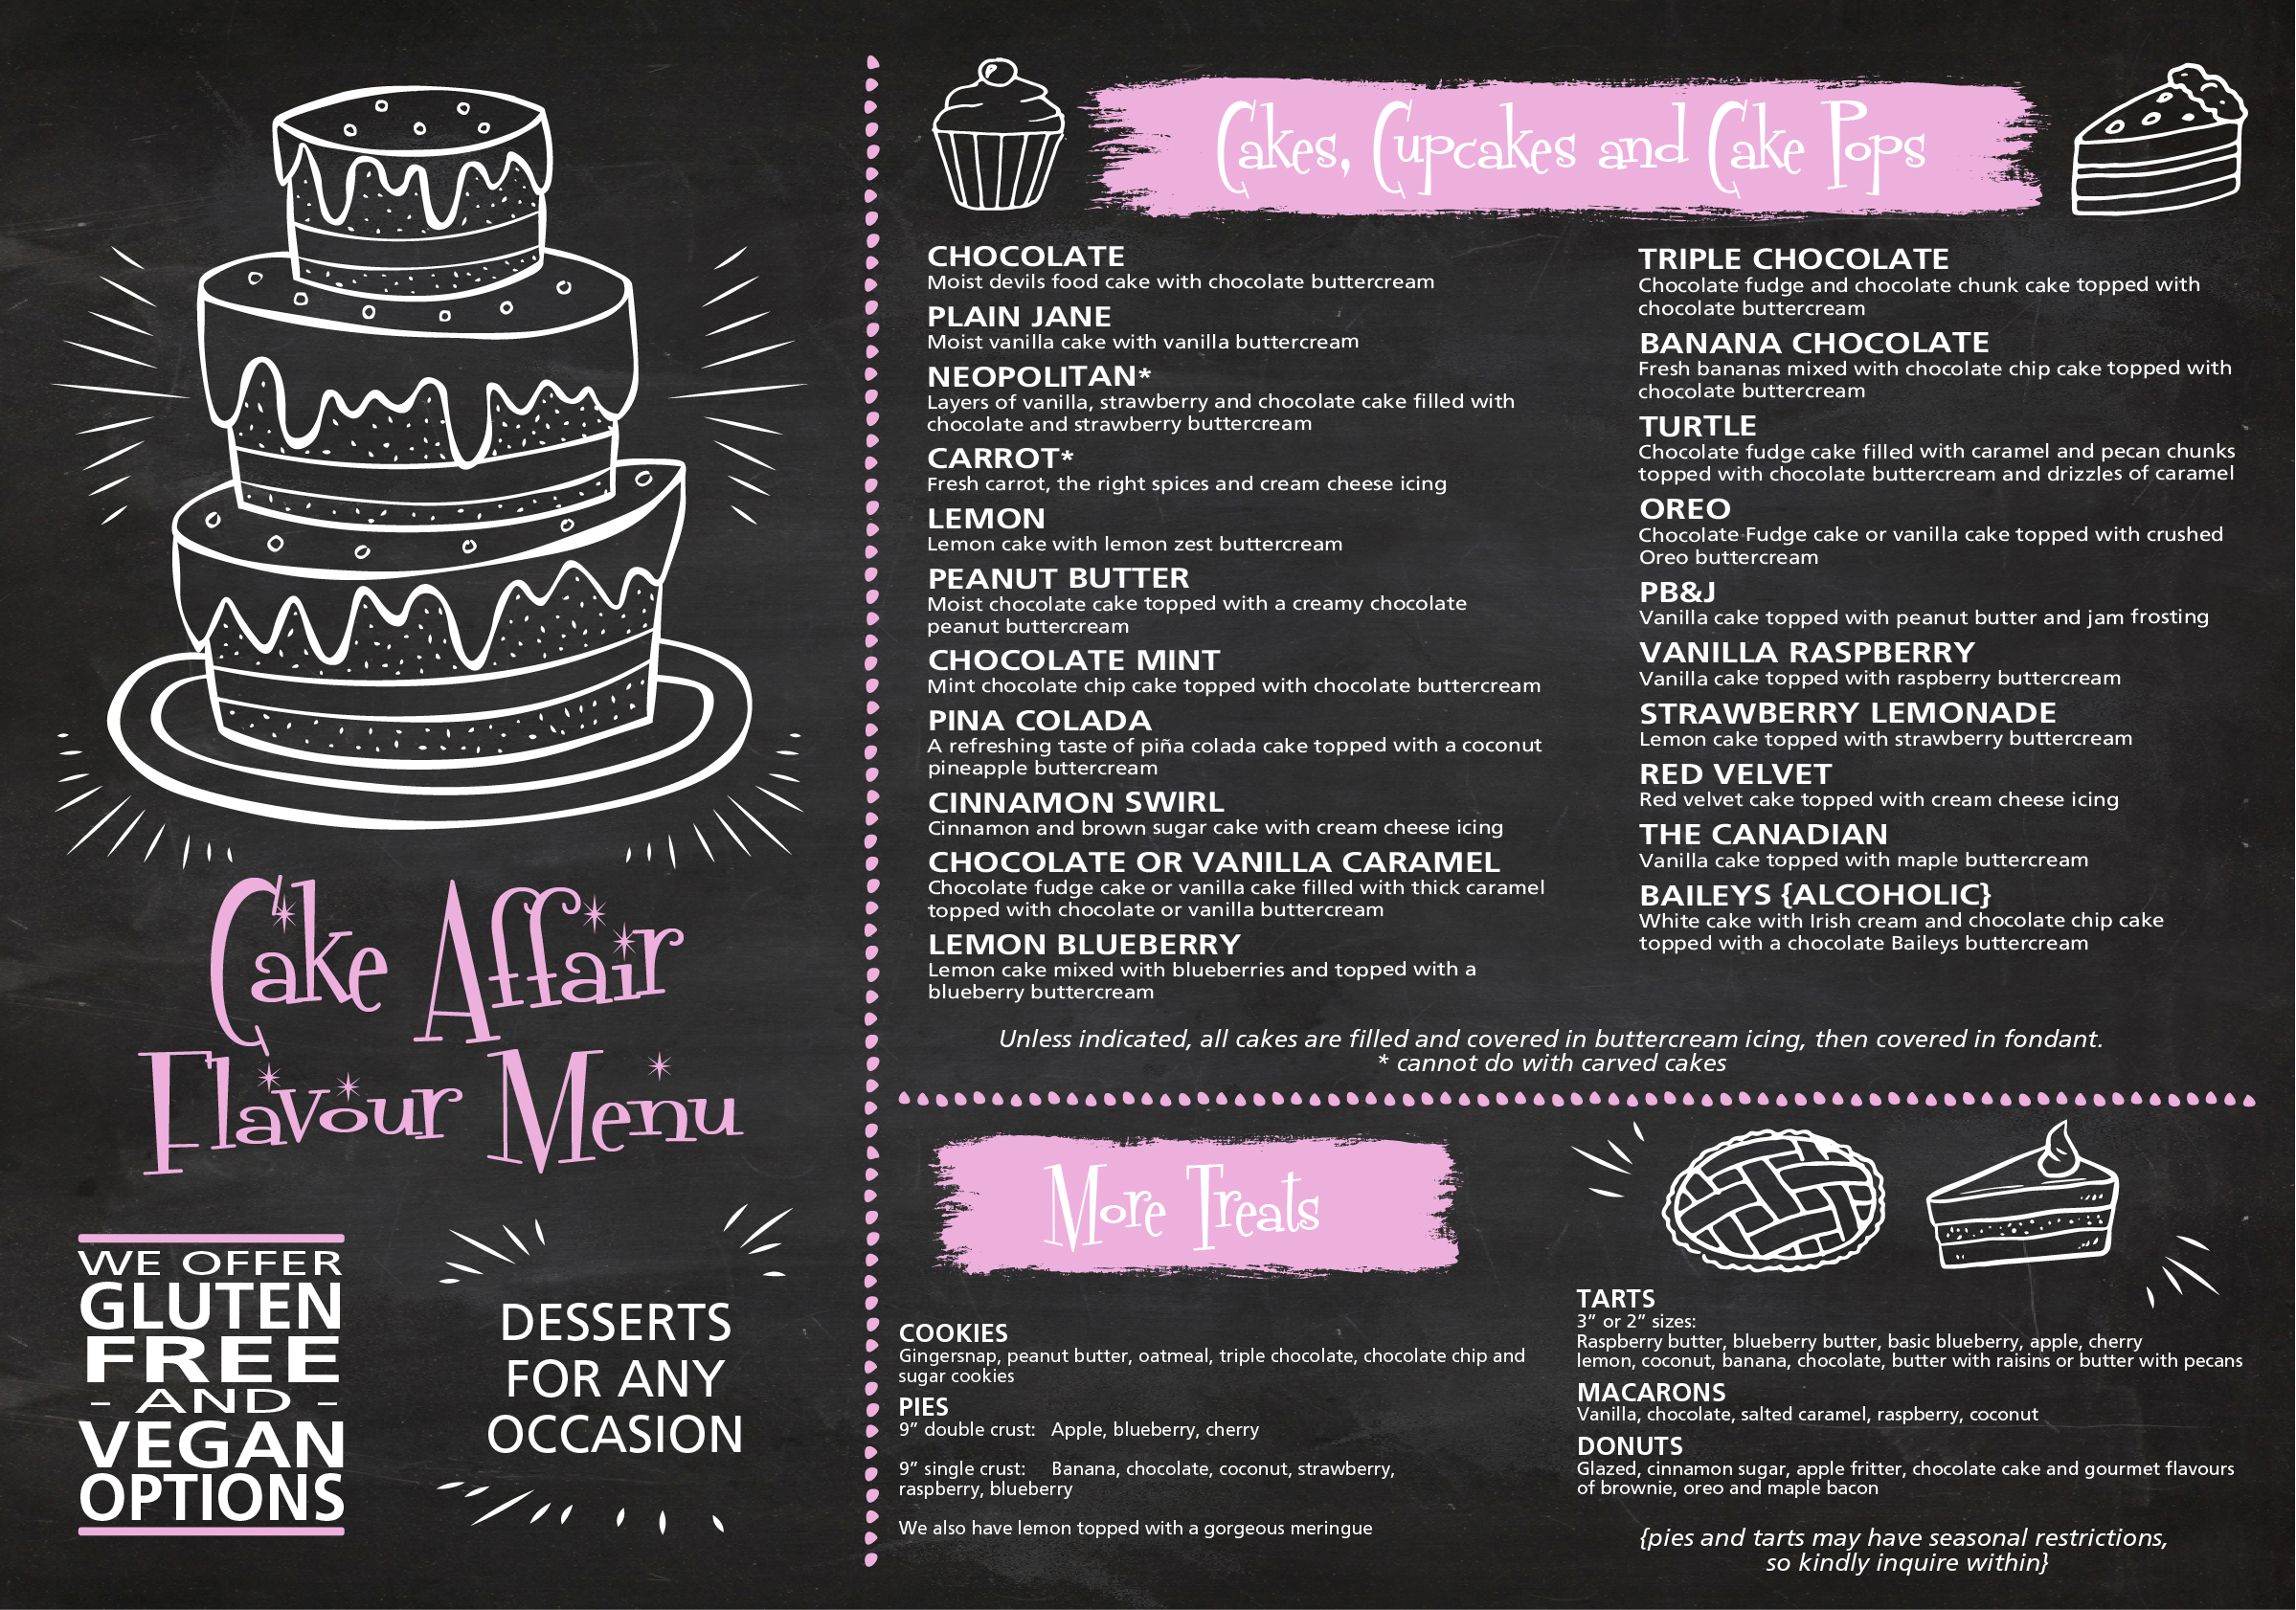 cake affair flavour menu